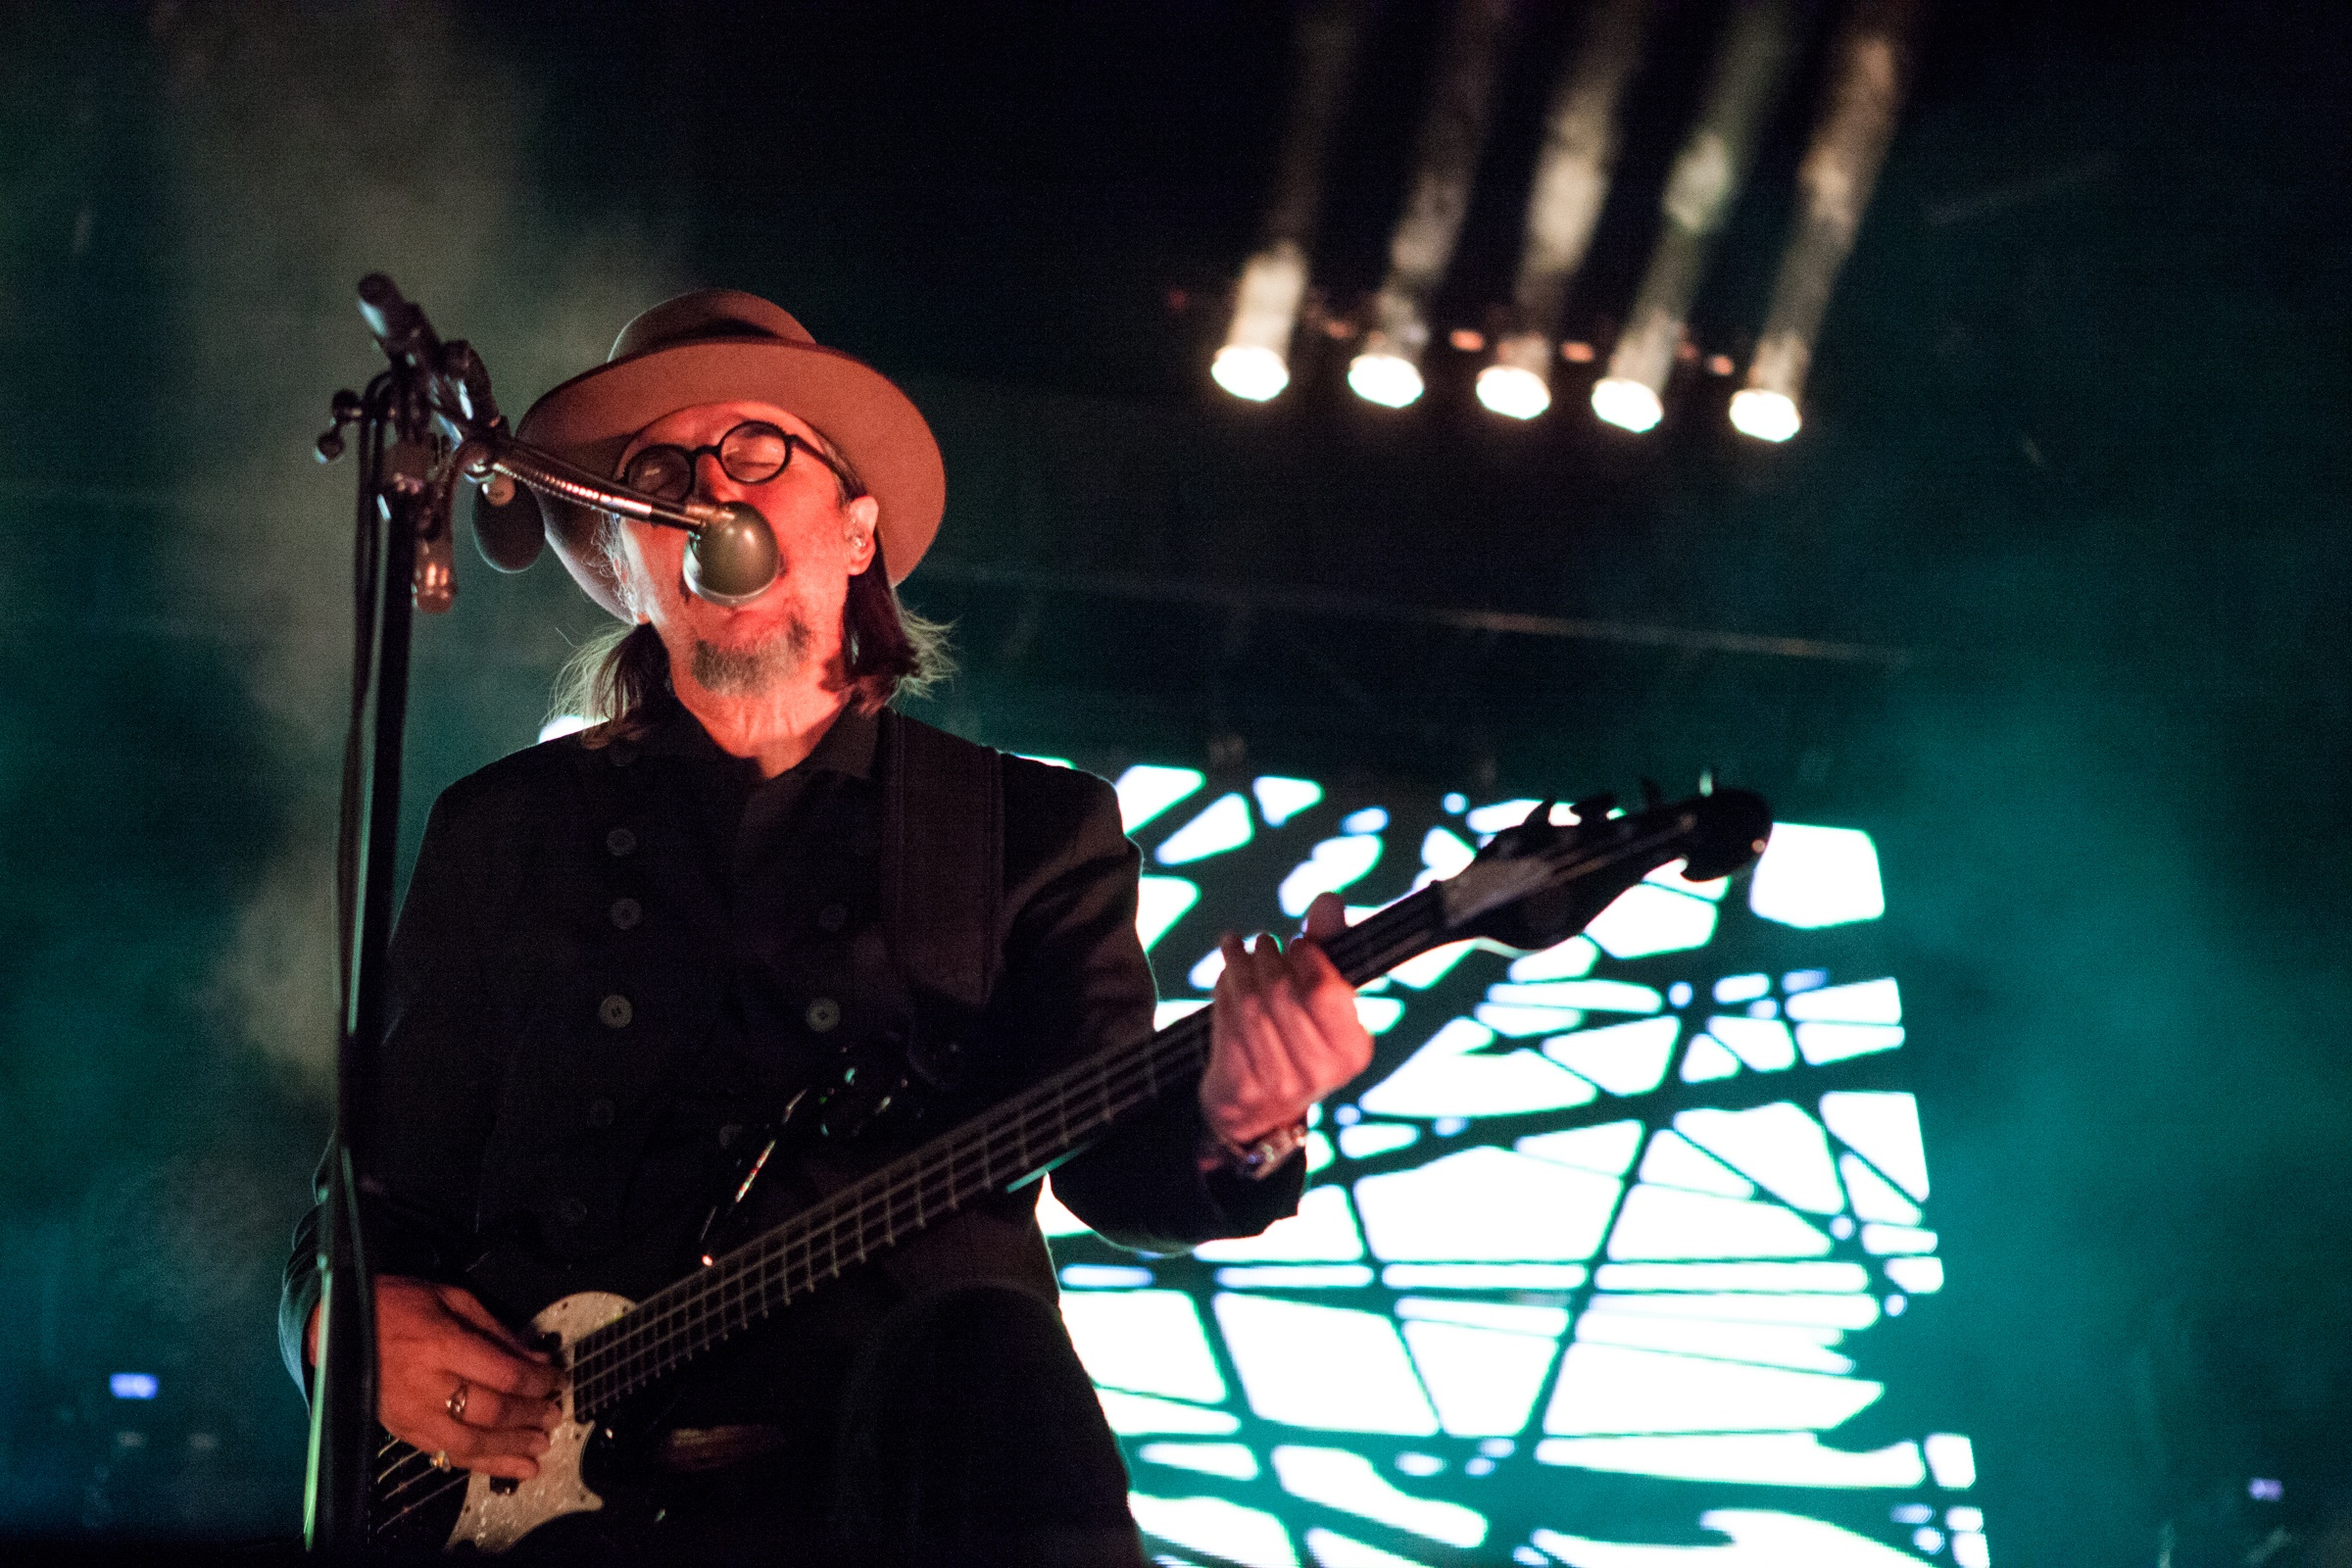 Primus Tour Dates 2020 Primus Tour Dates and Concert Tickets